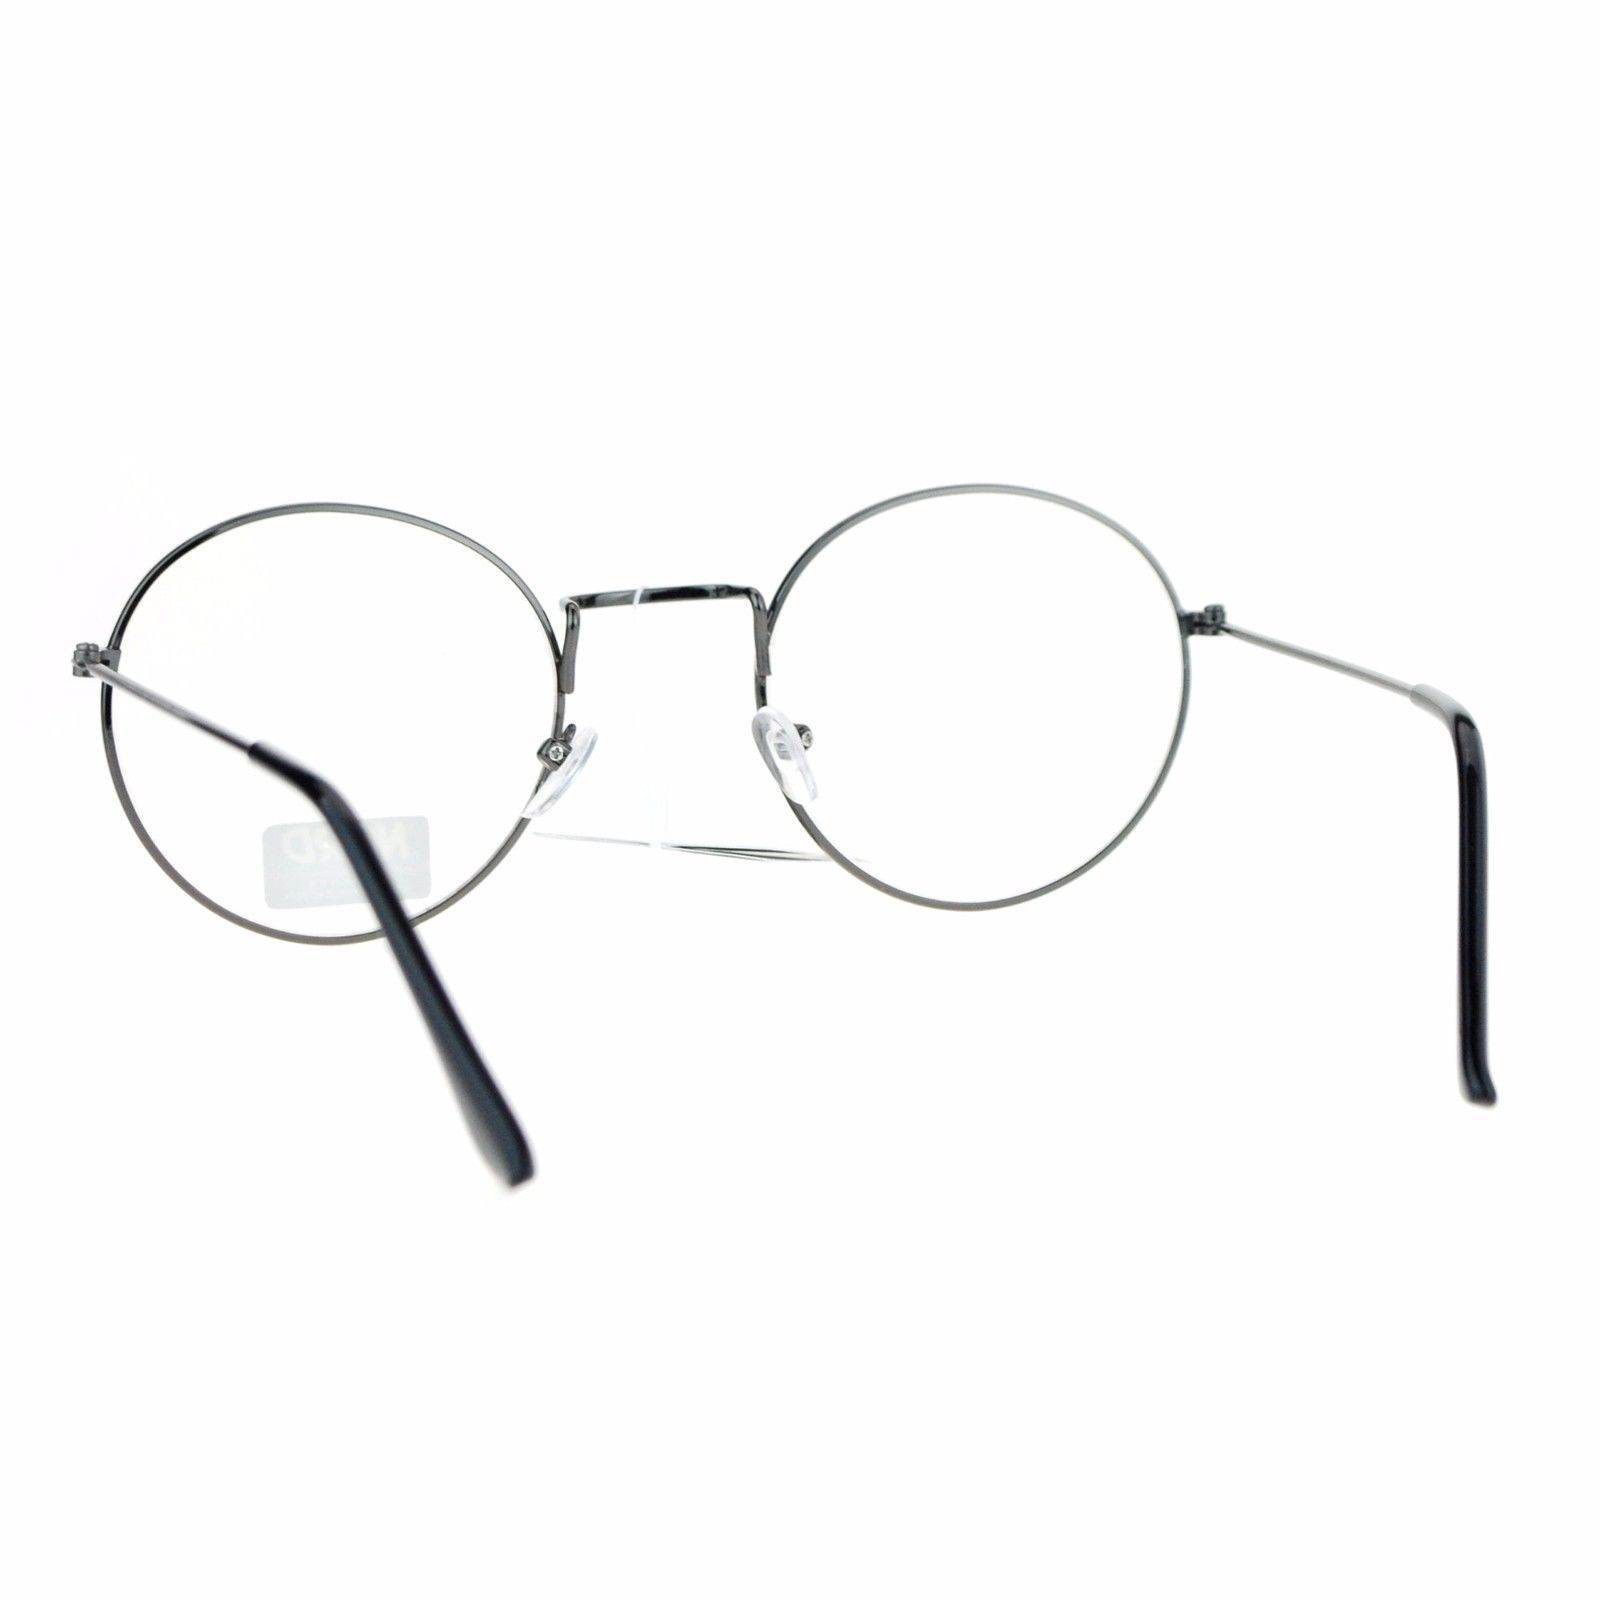 Vintage Design Clear Lens Glasses Round Metal Frame Fashion Eyeglasses